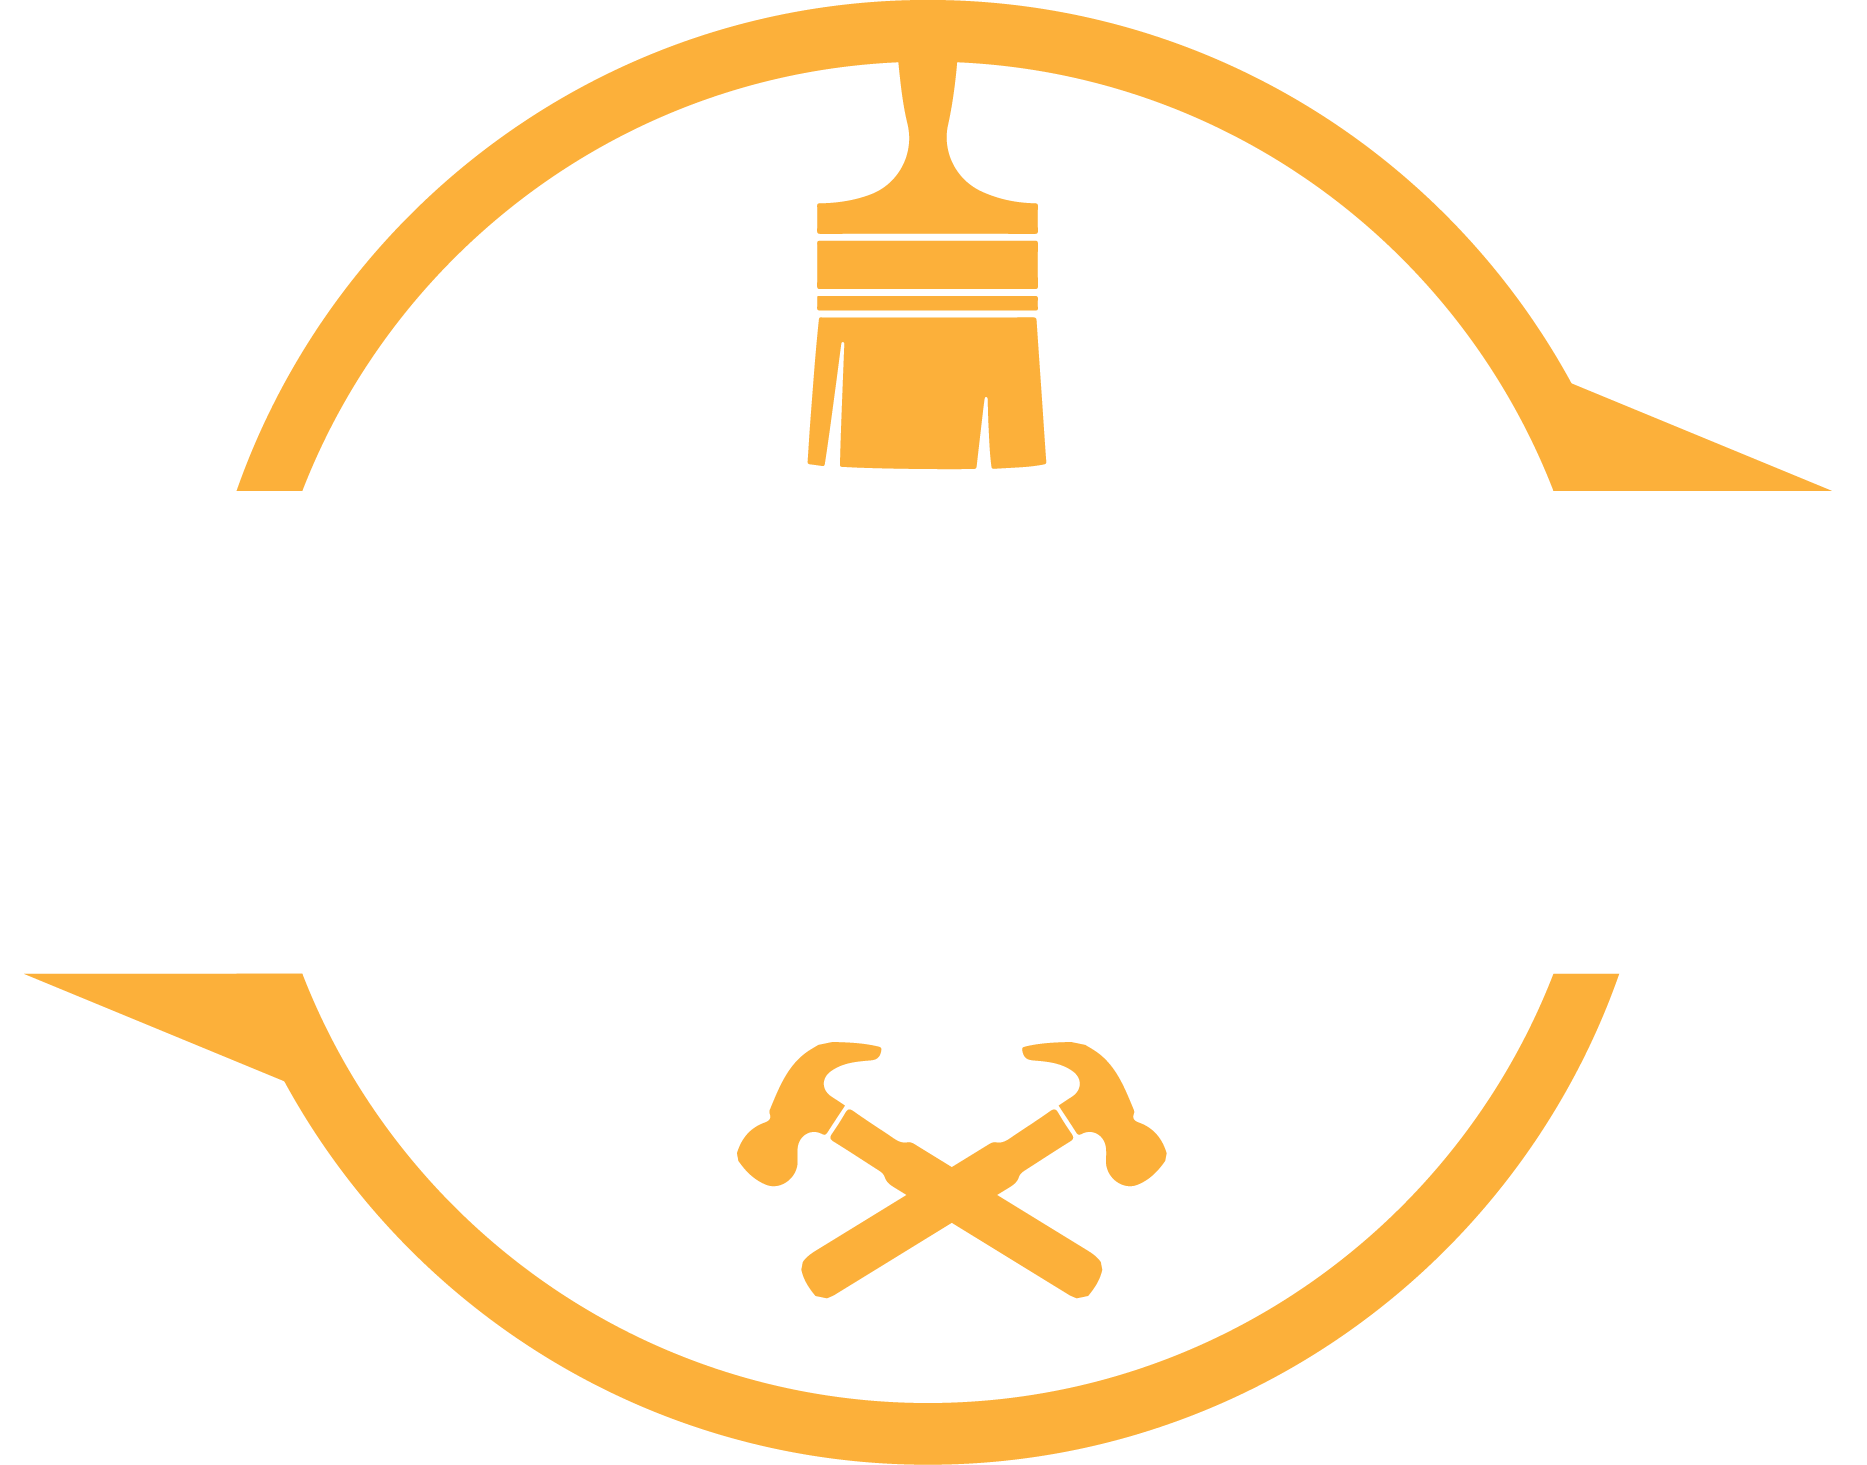 Top Notch Painting and Construction LLC